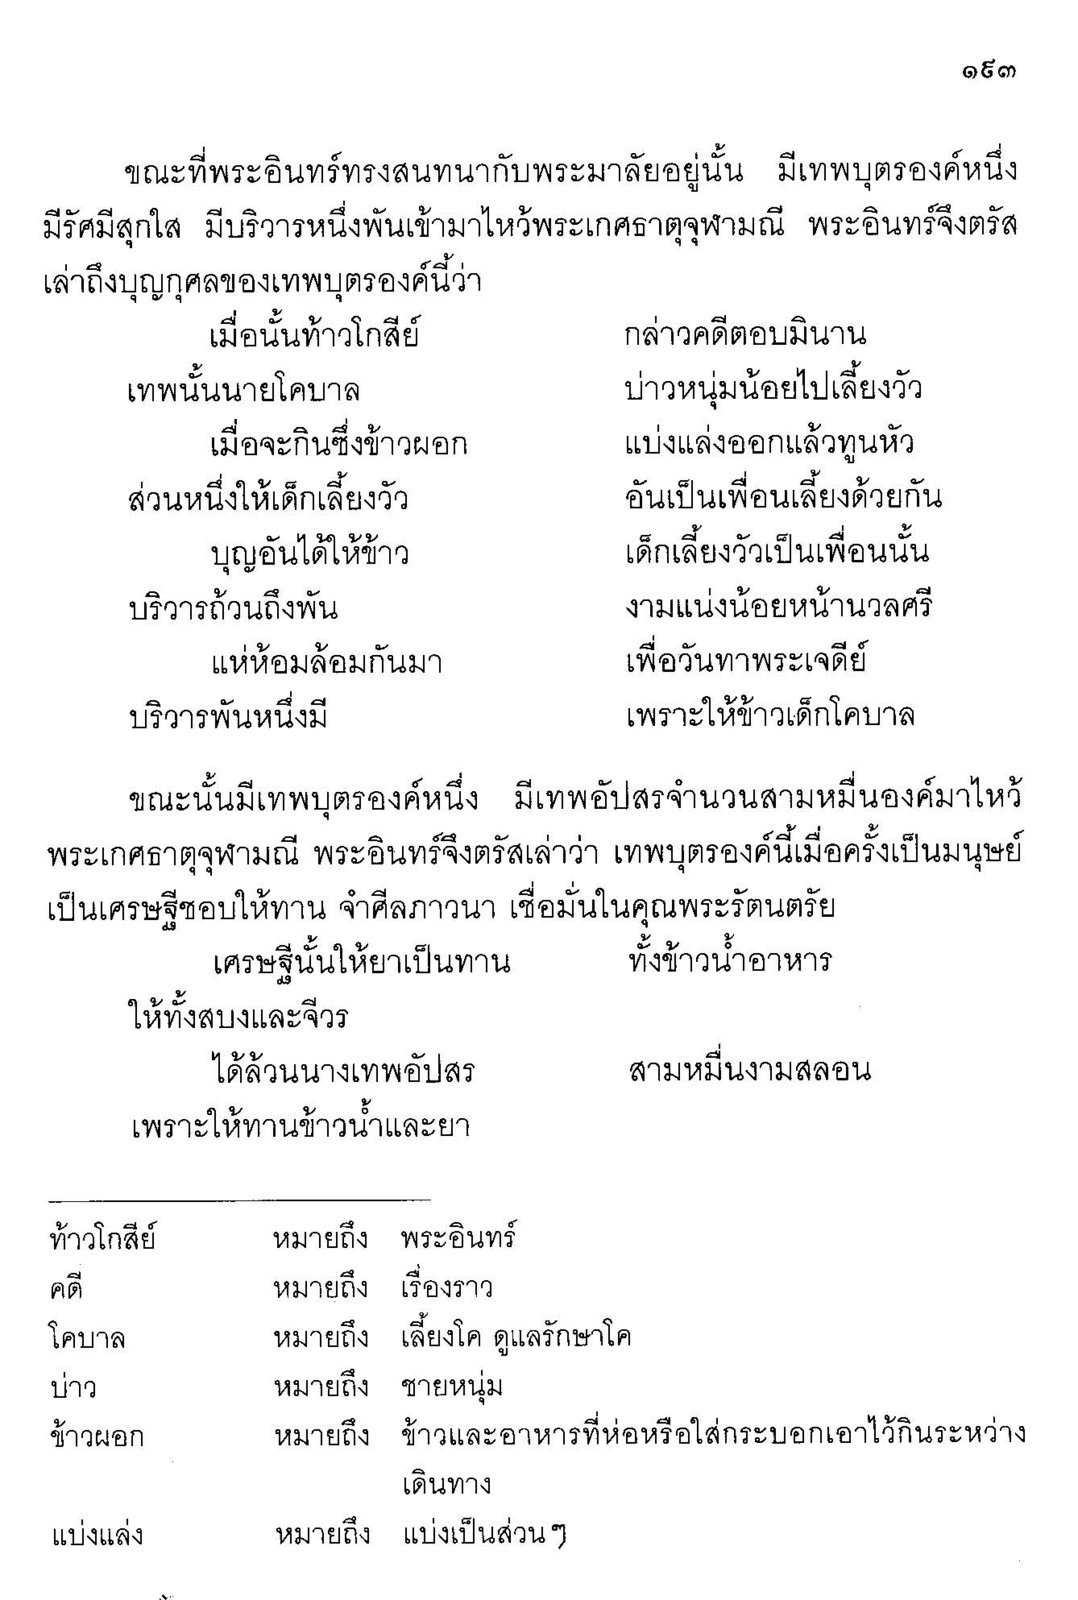 ebook_thai_sect_2_65-990_Page_201.jpg